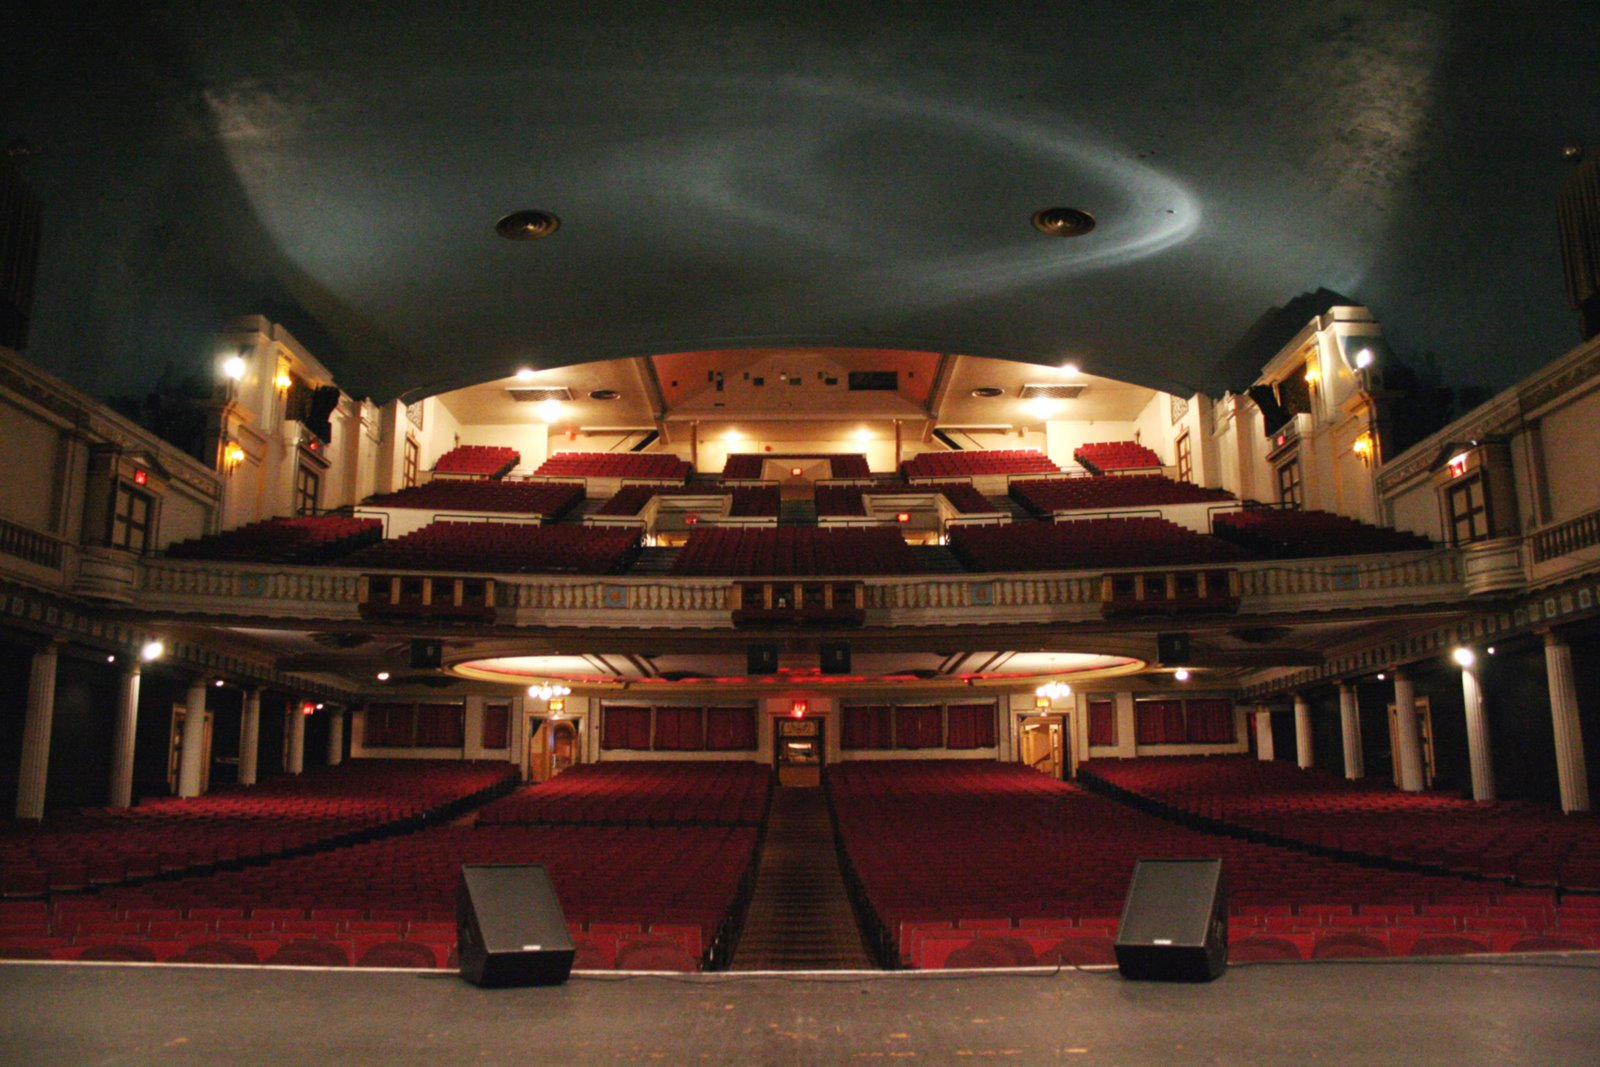 Jerry S Brokendown Palaces Tower Theatre 19 S 69th